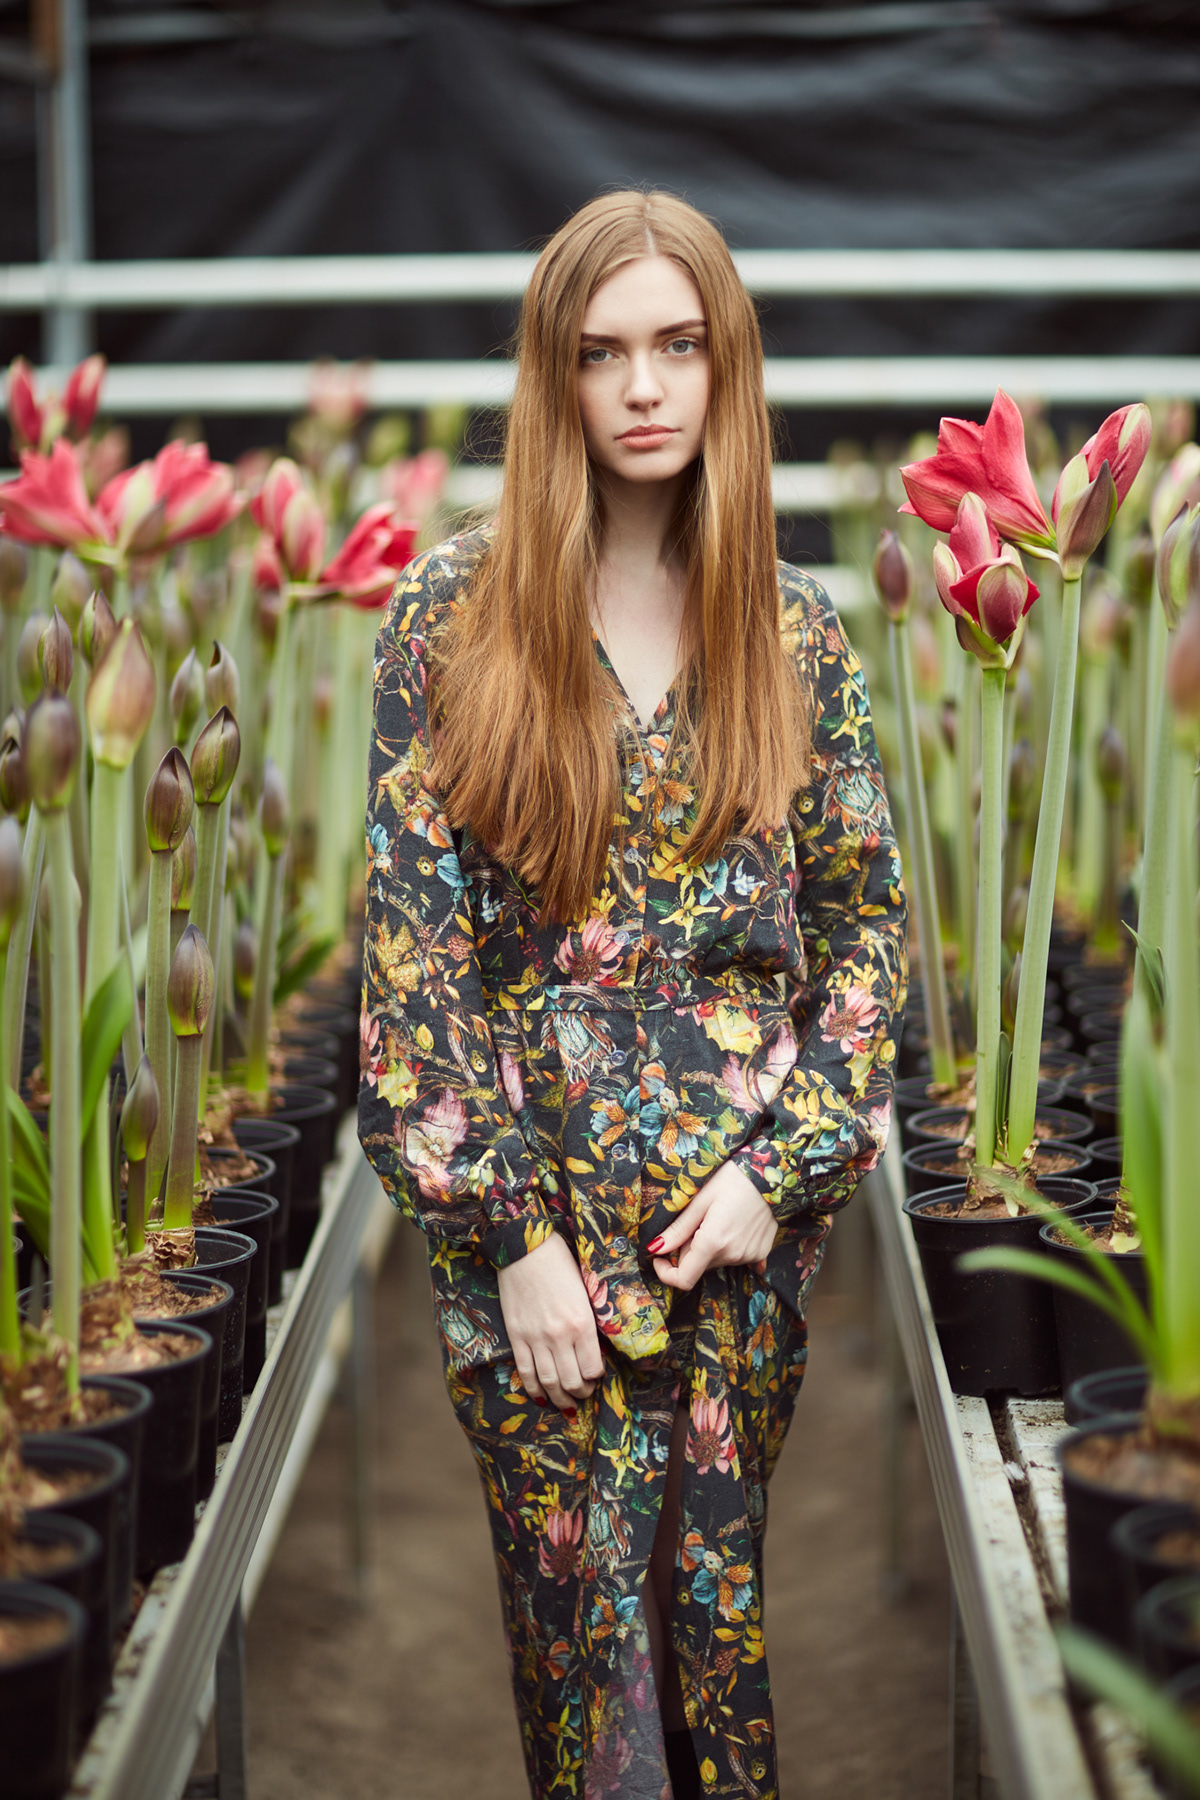 Flowers greenhouses Natural Light portrait redhead spring tulips woman